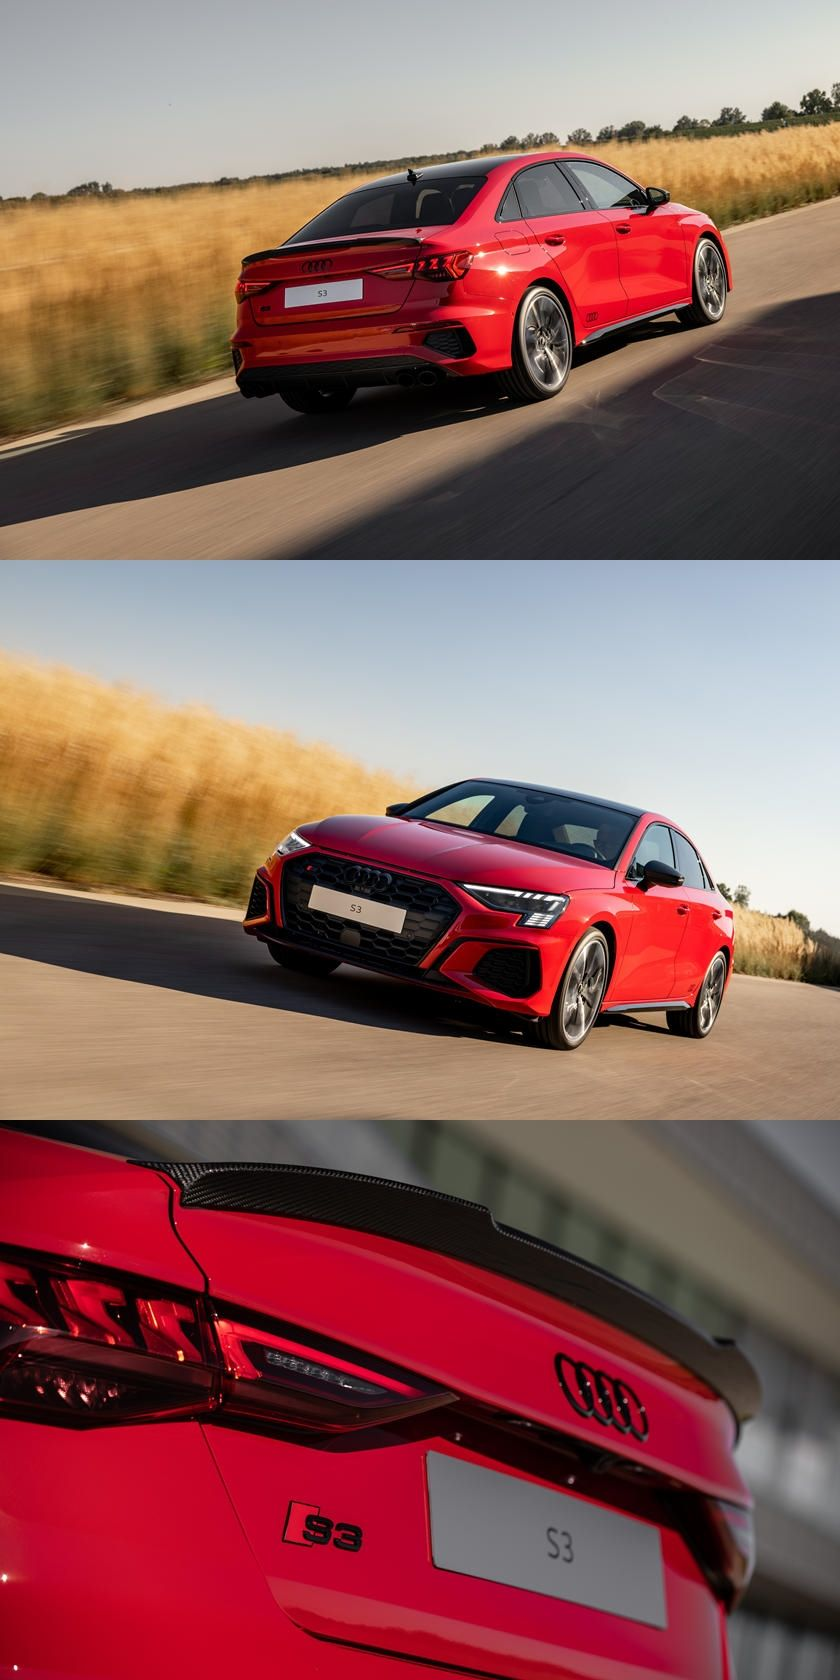 2022 Audi S3 Coming Next Year With Over 300 Horsepower